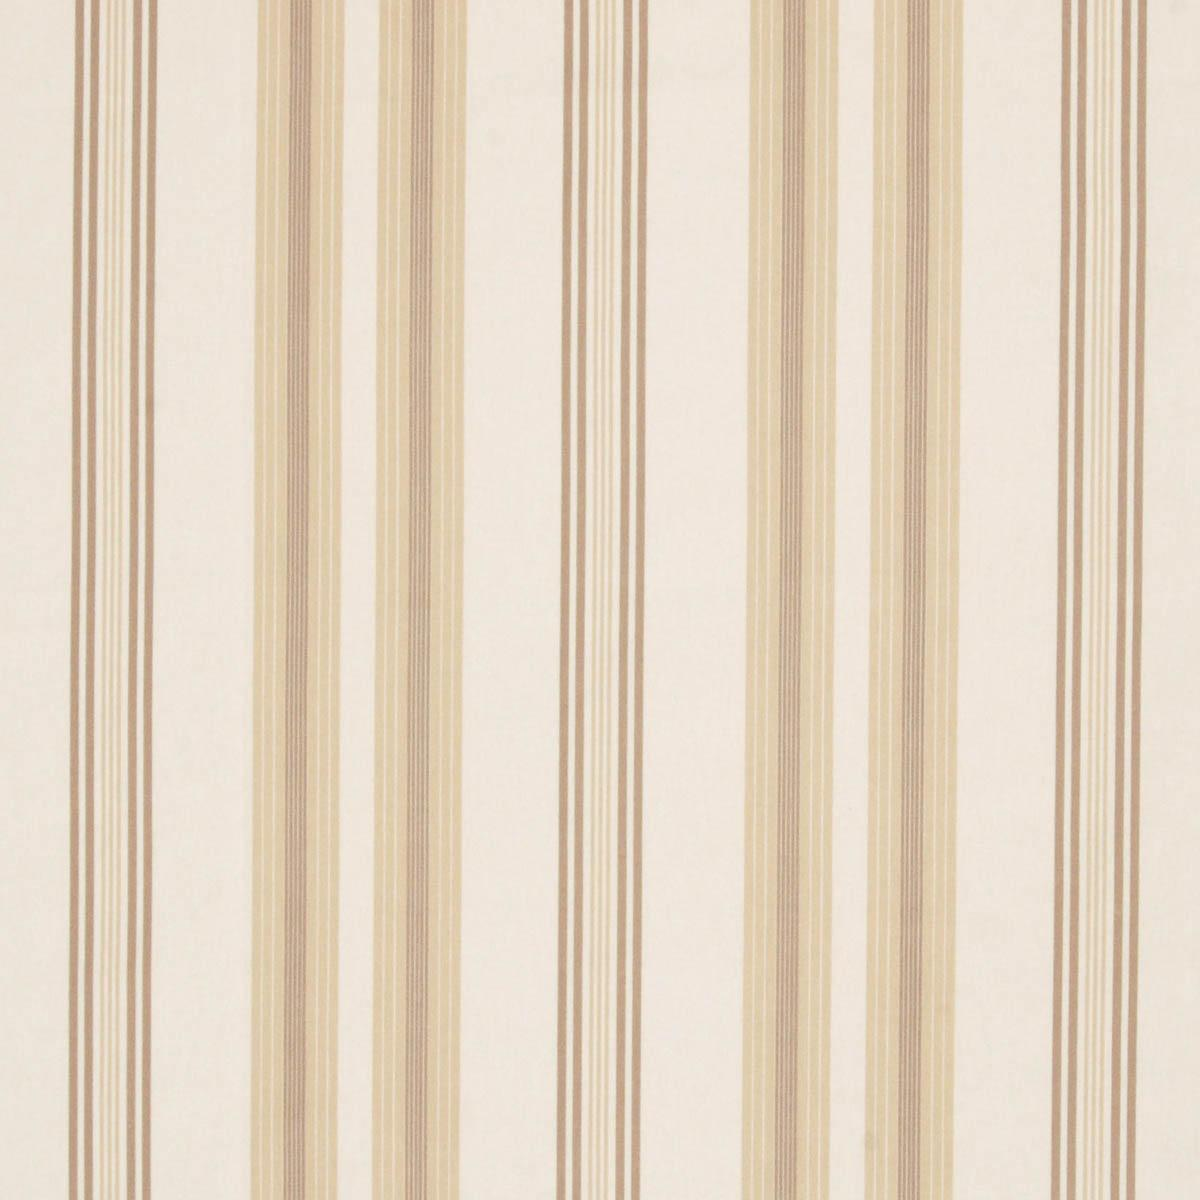 Stockists of Natural Lulu Stripe Curtain Fabric